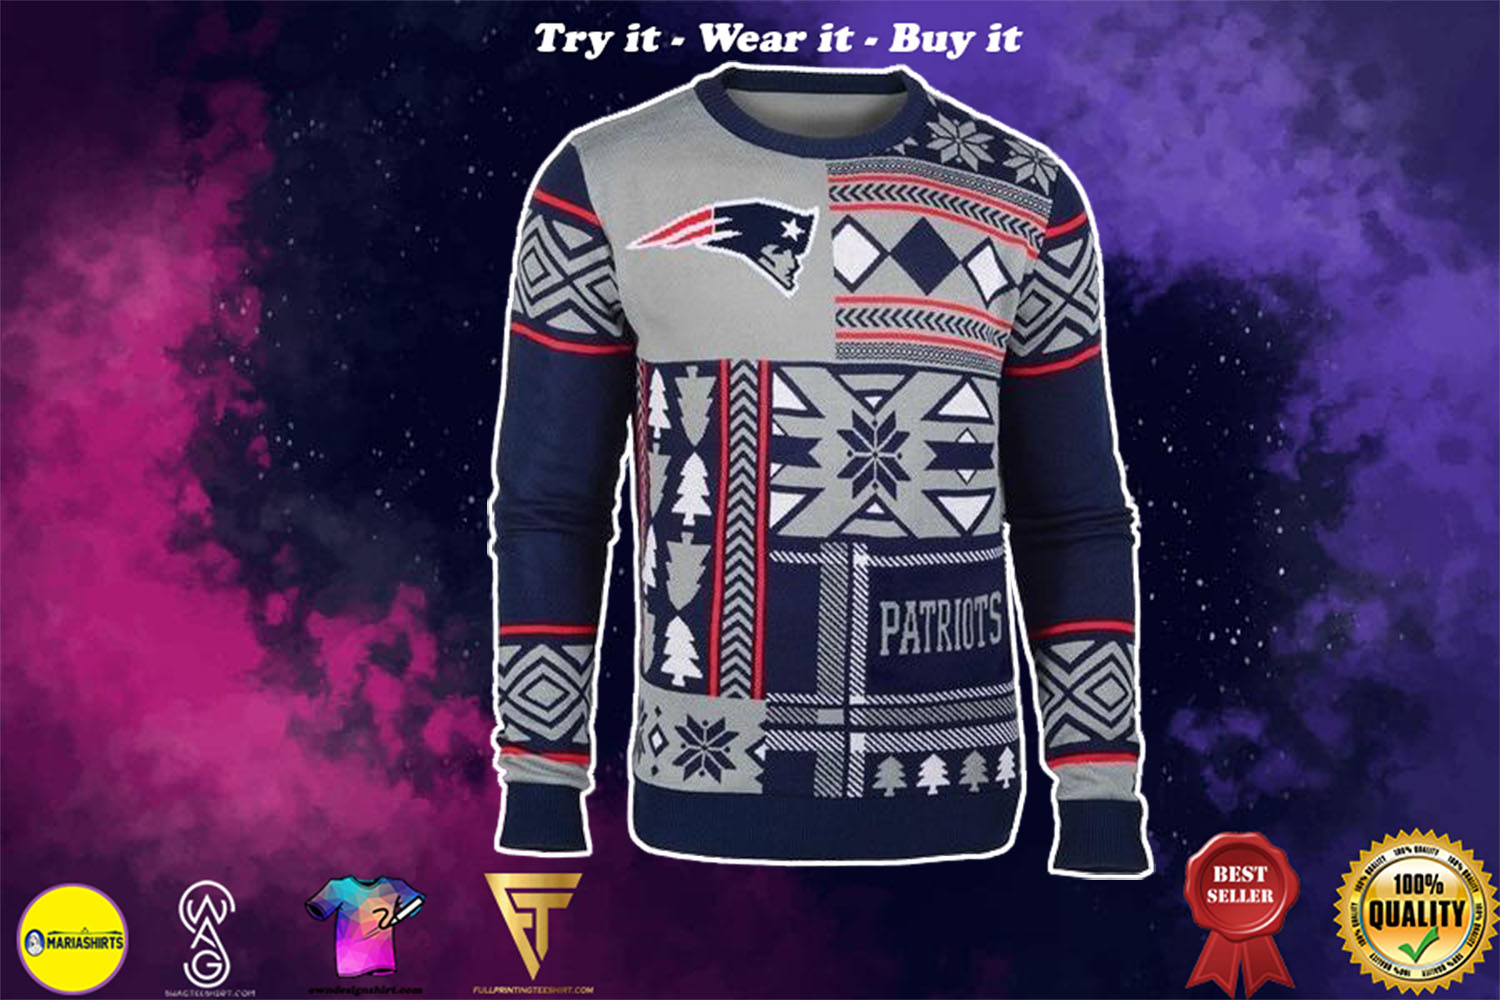 [special edition] new england patriots patches ugly christmas sweater - maria